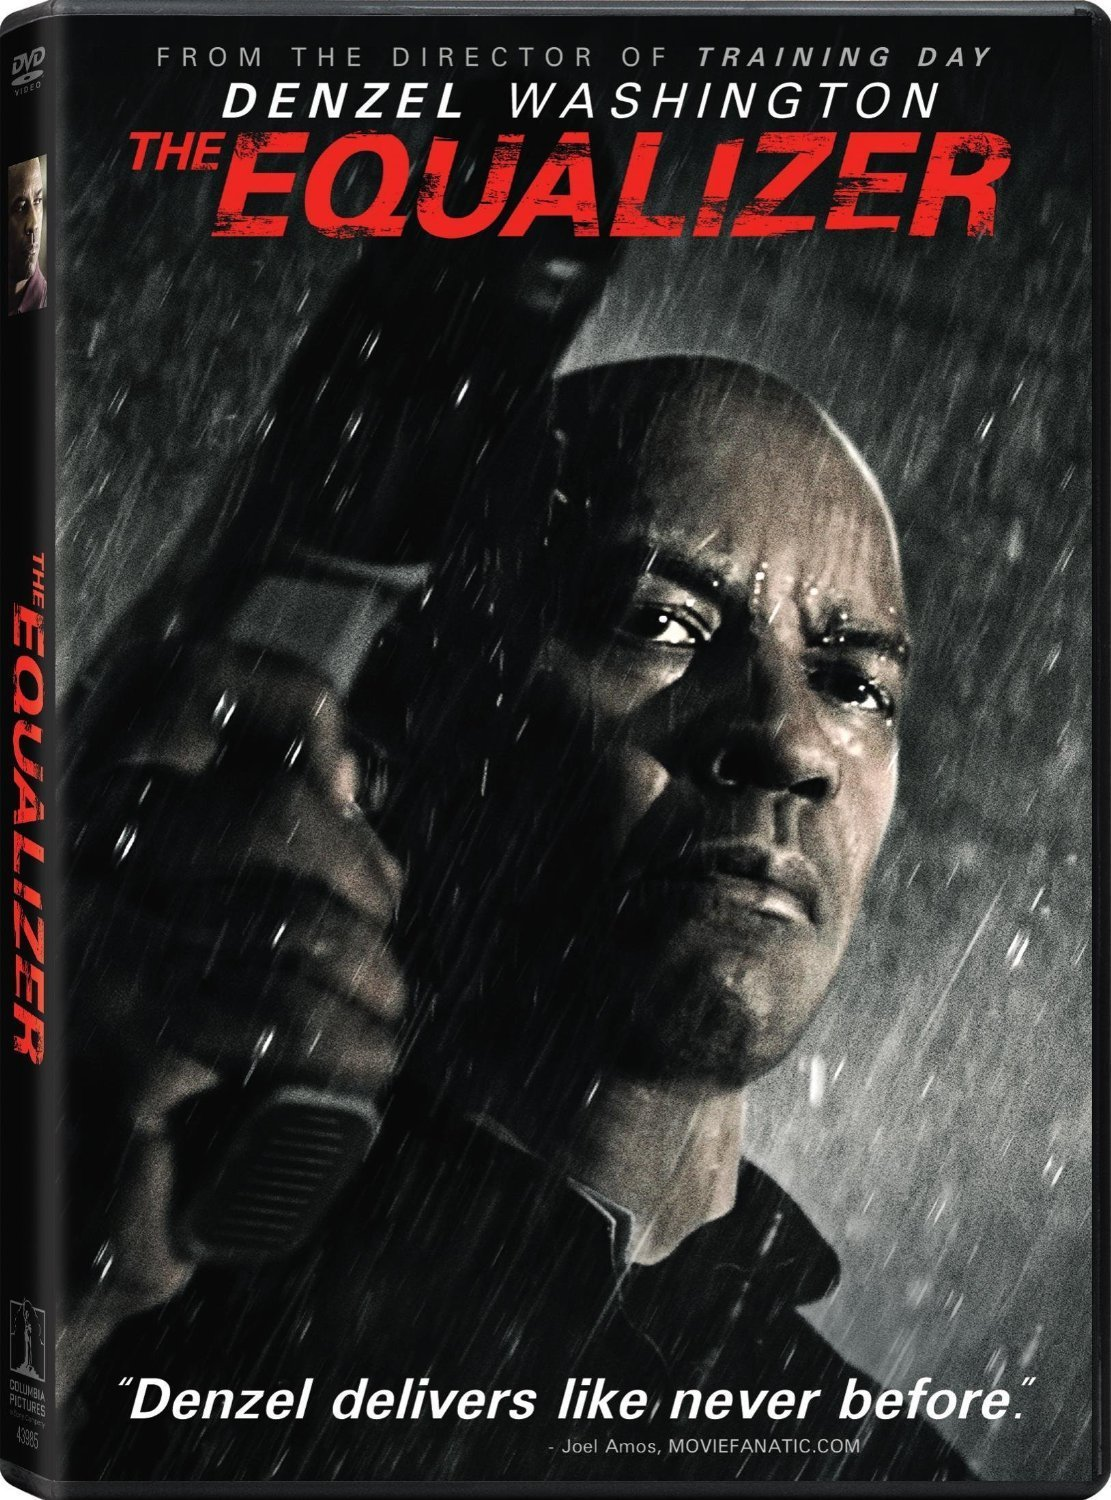 Image of The Equalizer